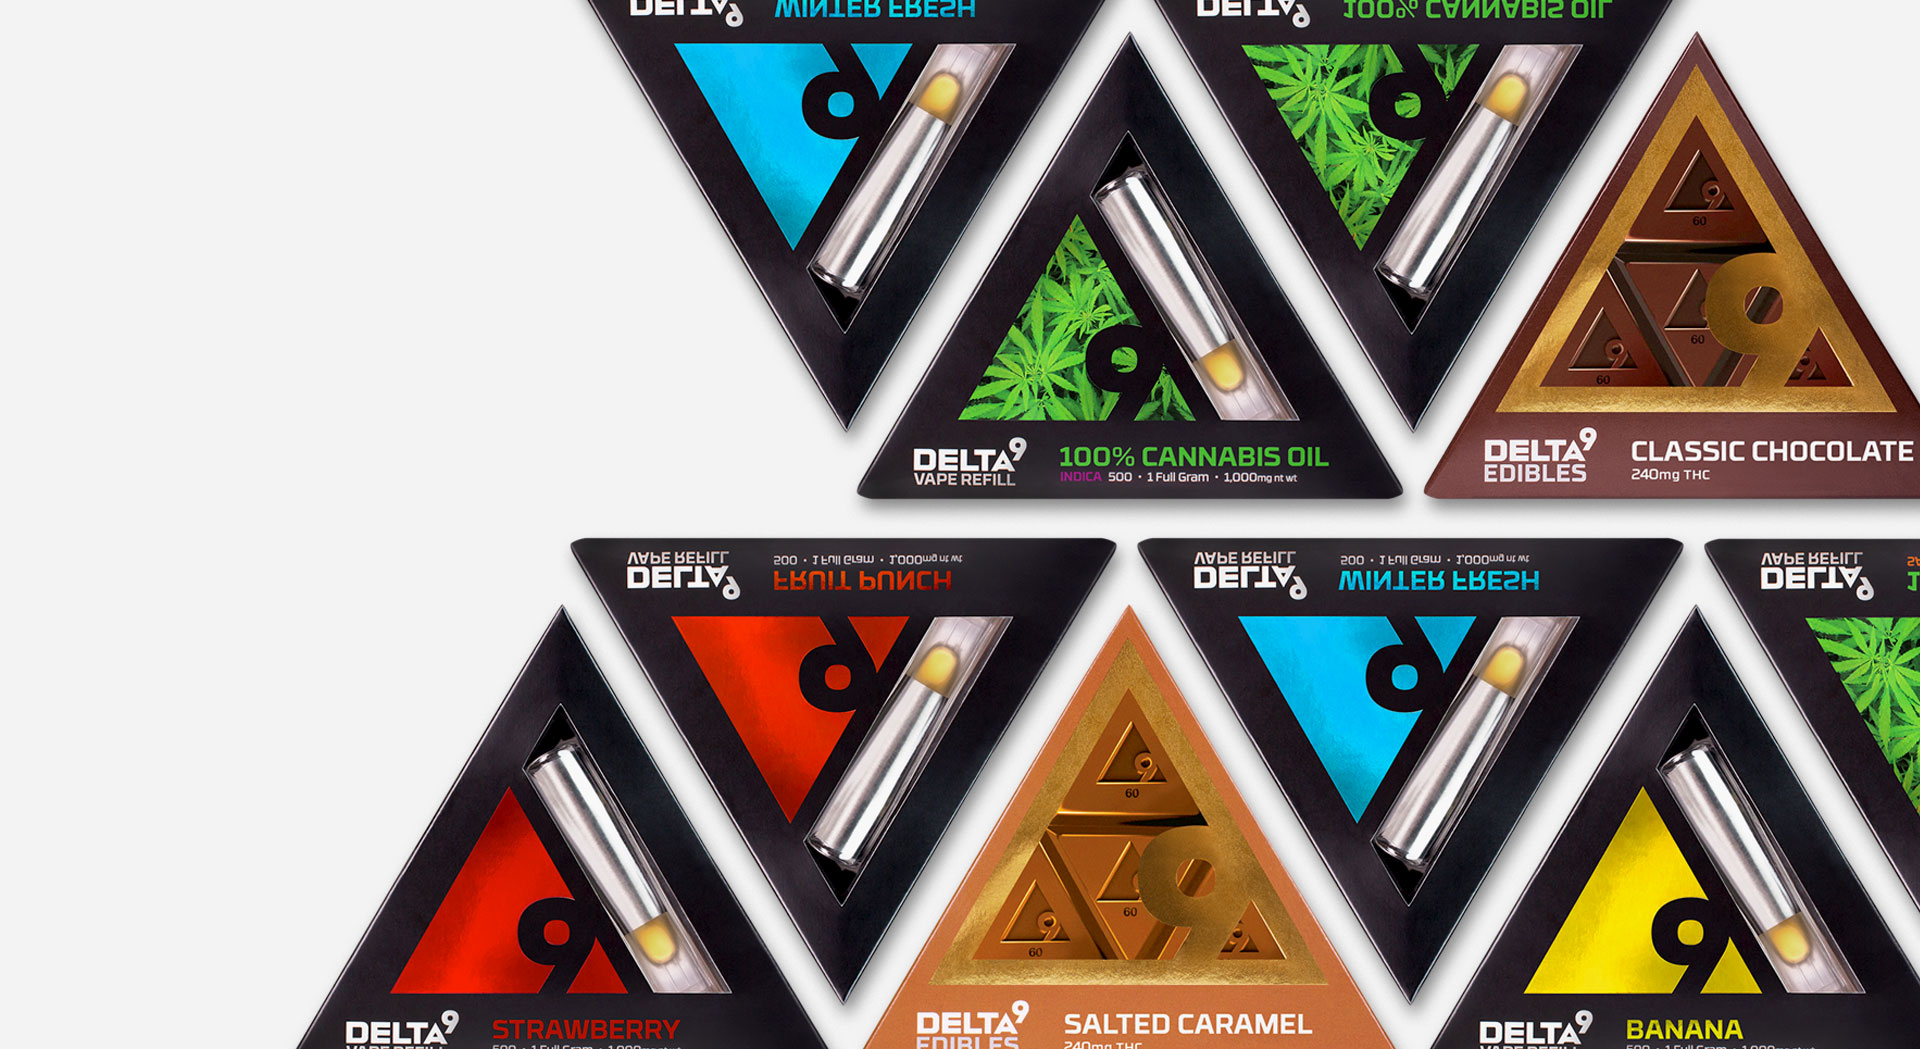 Delta9 The Finest Cannabis Products